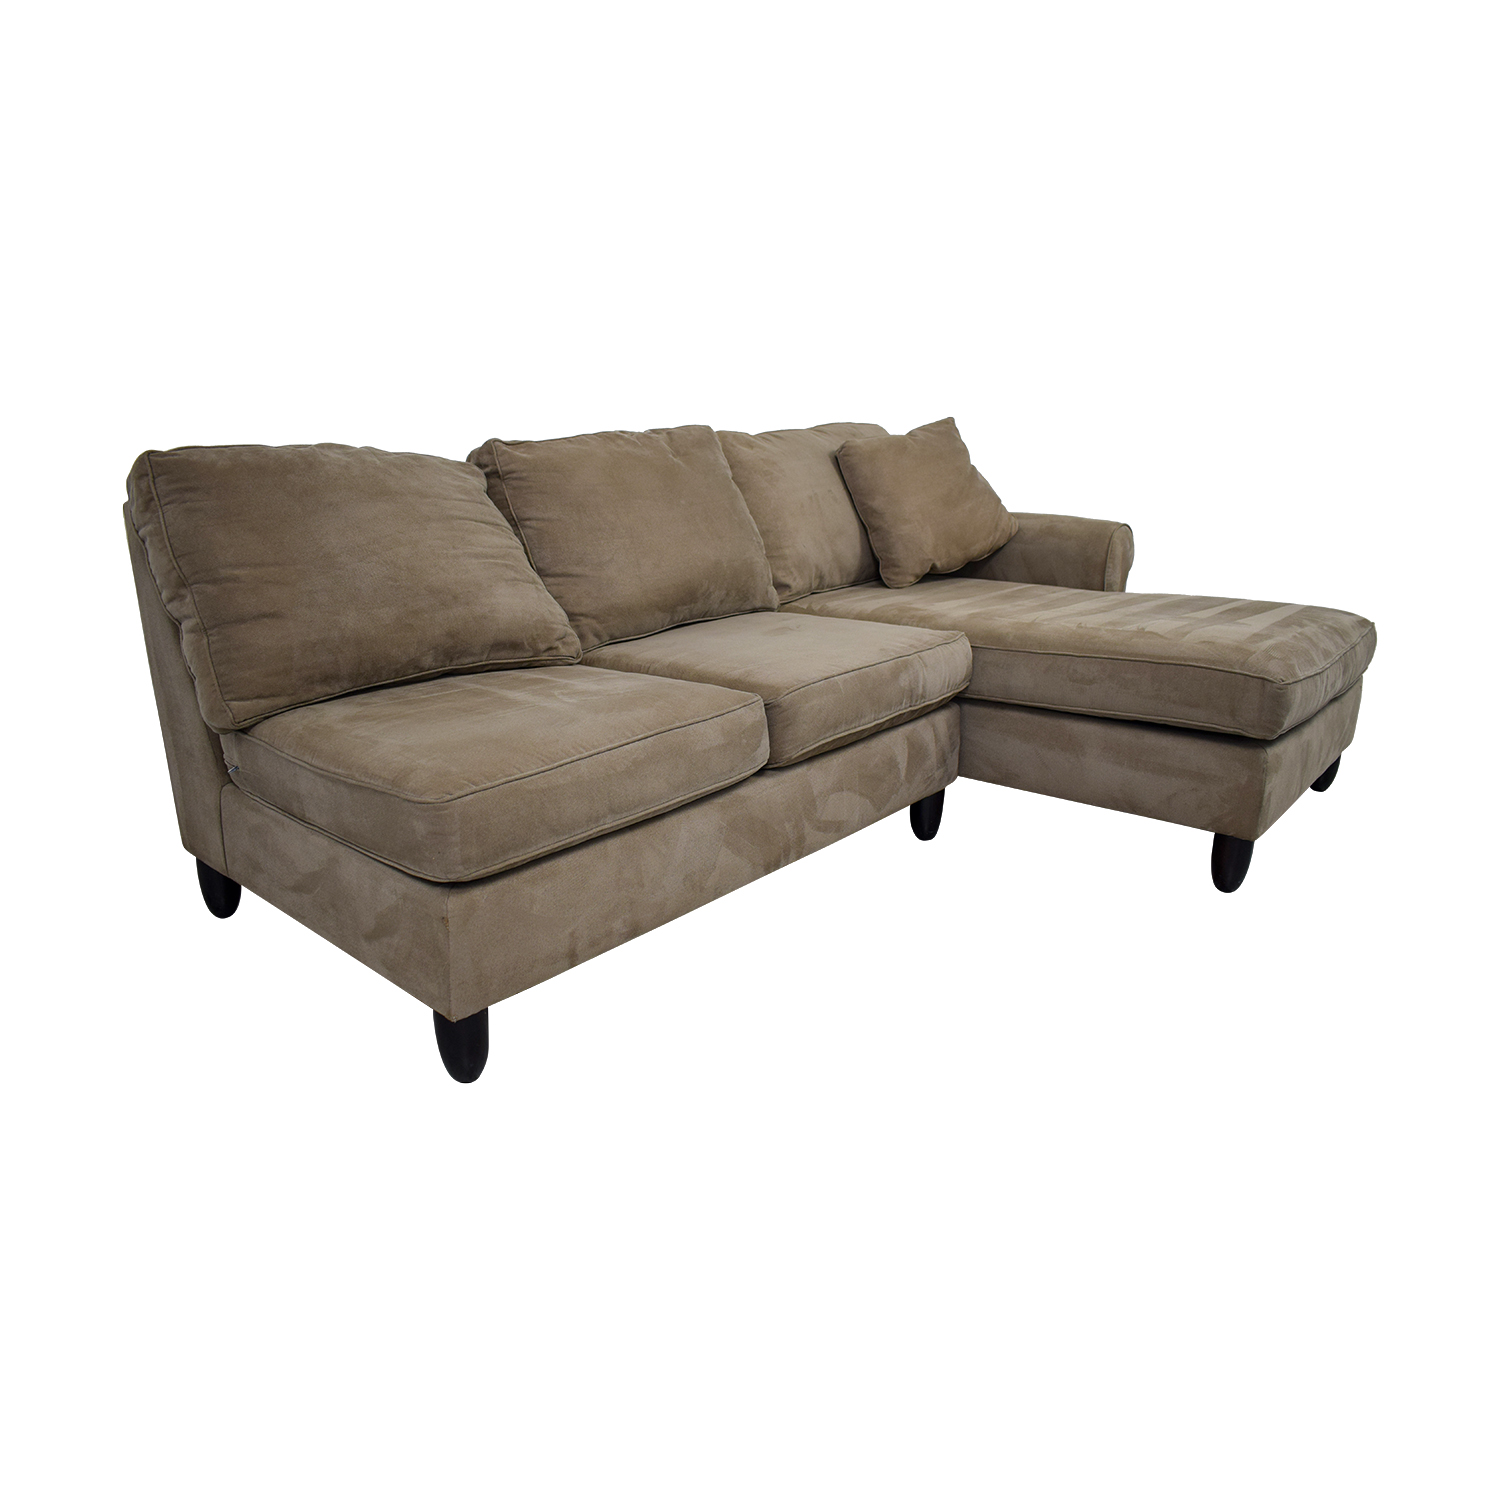 Brilliant 90 Off Havertys Havertys Tan Chaise Sectional Sofas Pdpeps Interior Chair Design Pdpepsorg